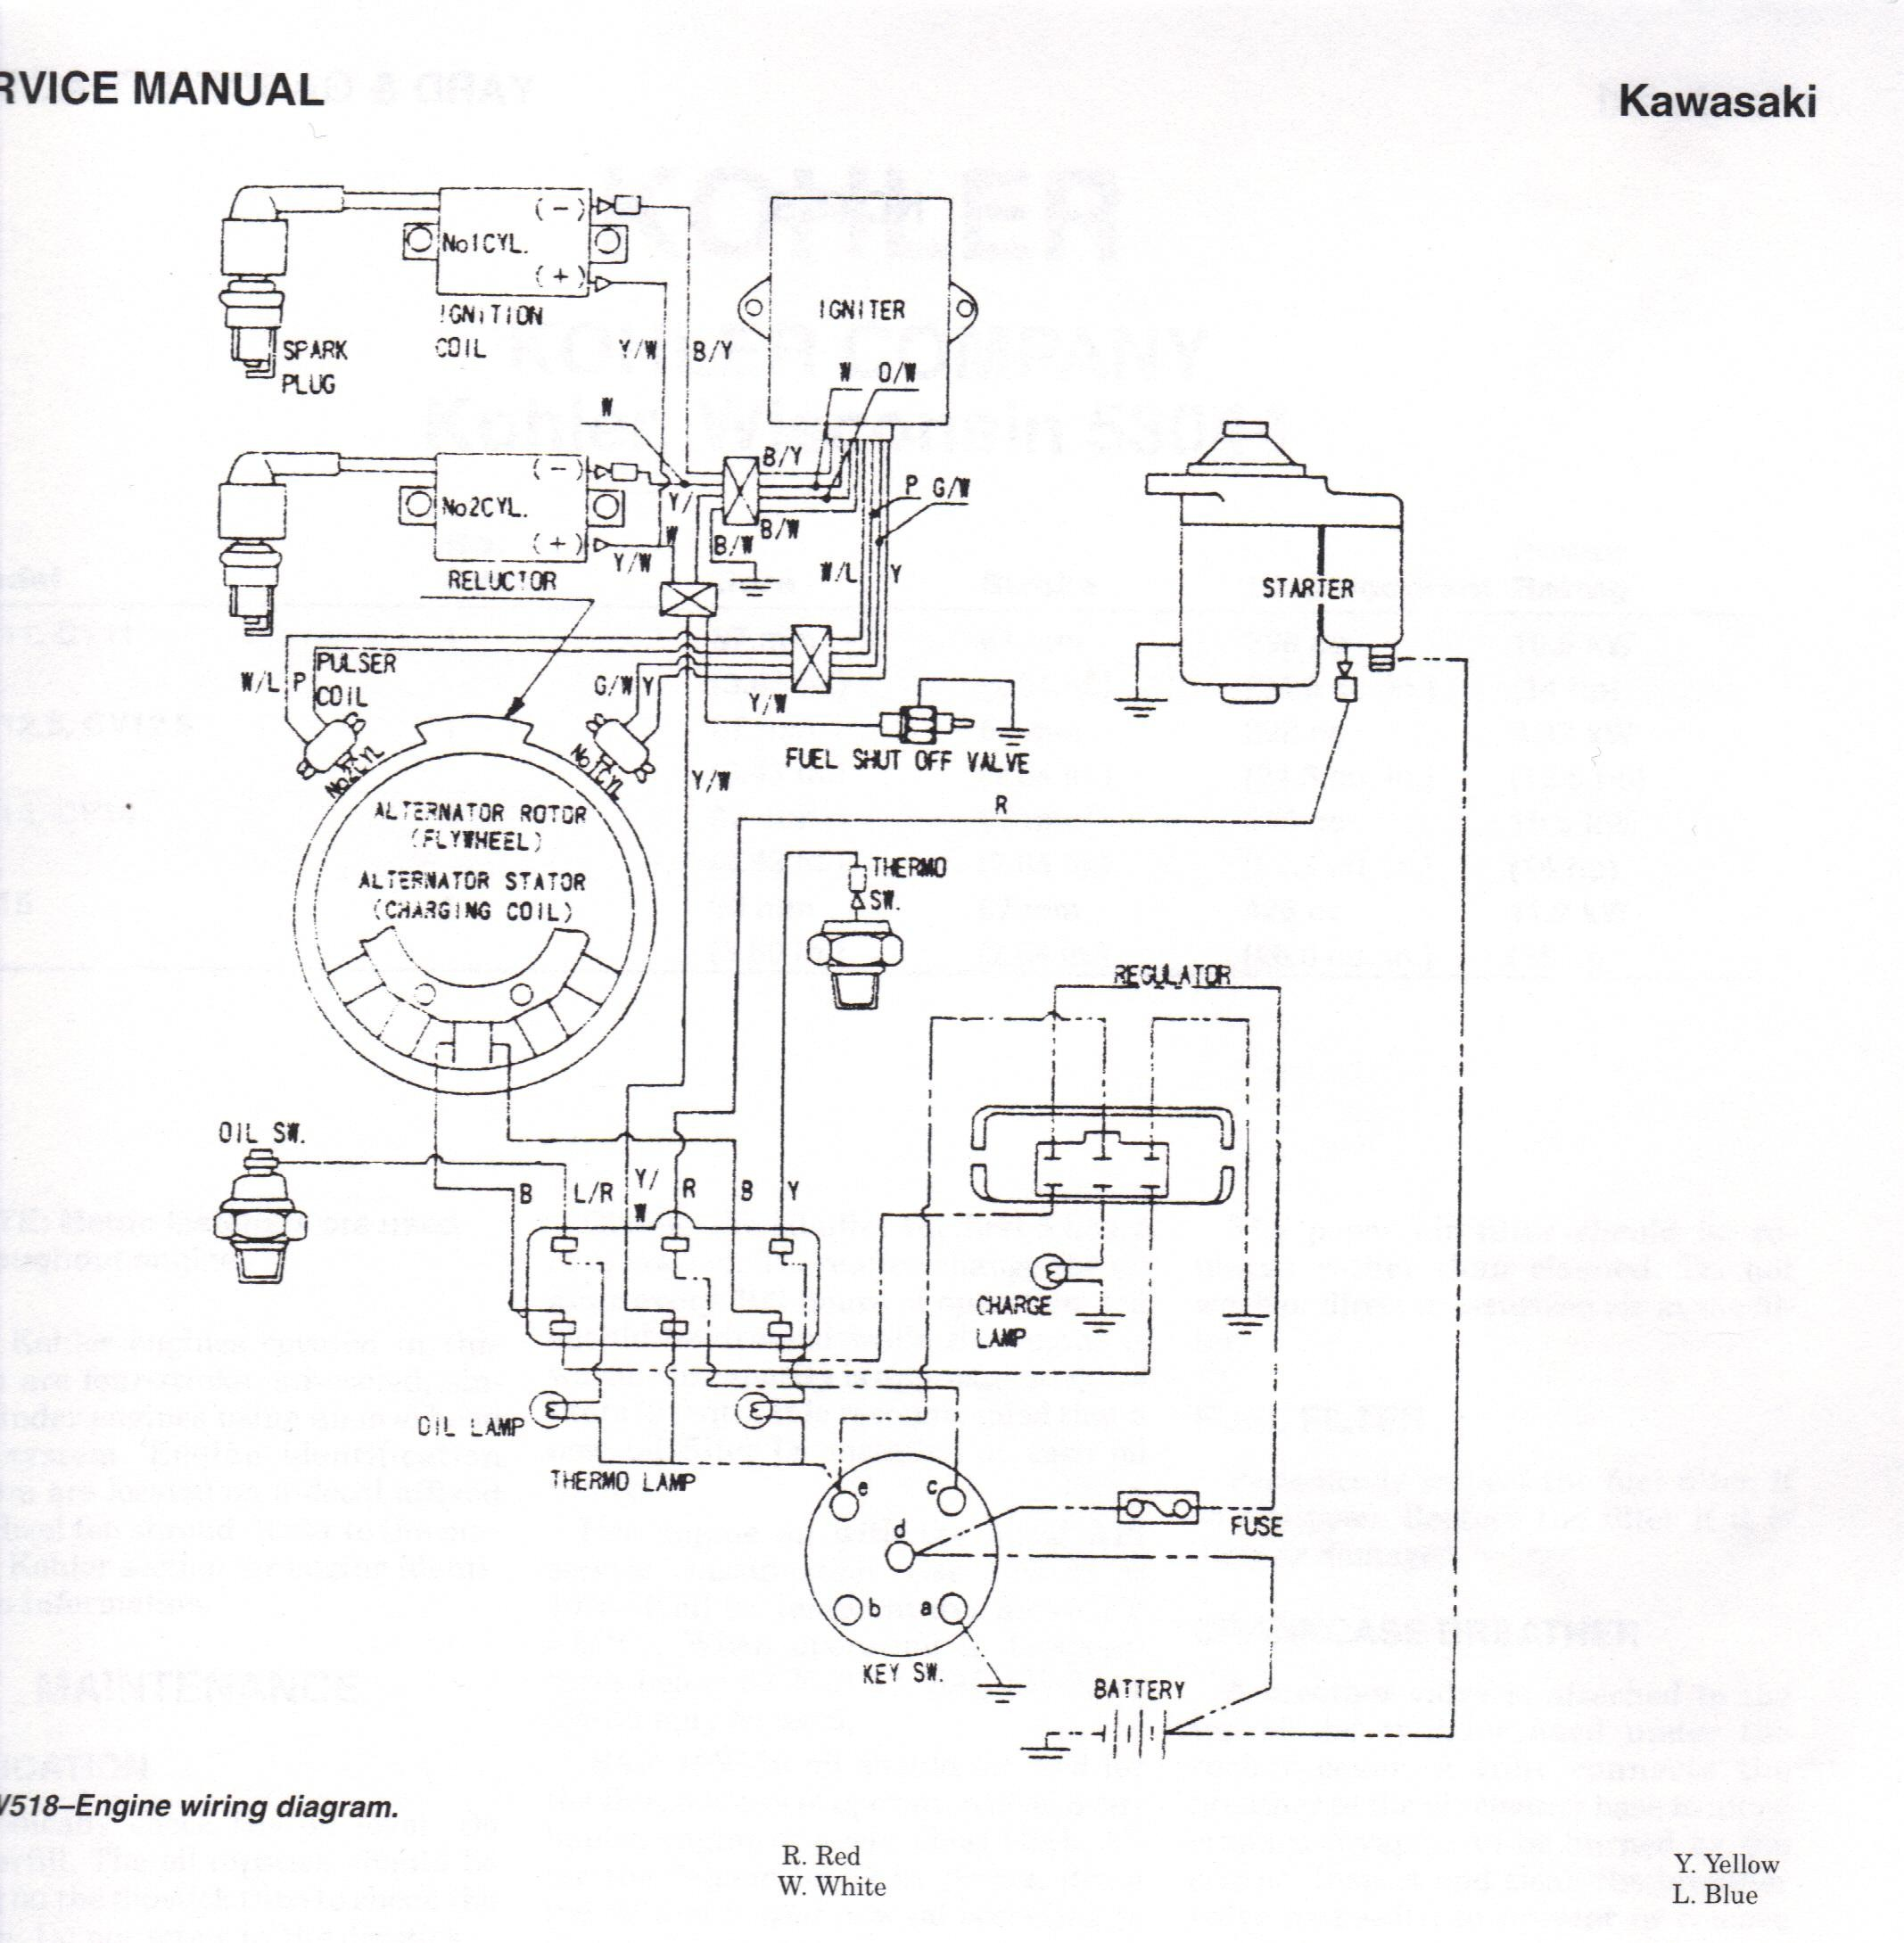 John Deere Gator 6x4 Wiring Schematic Best Deer Photos Water